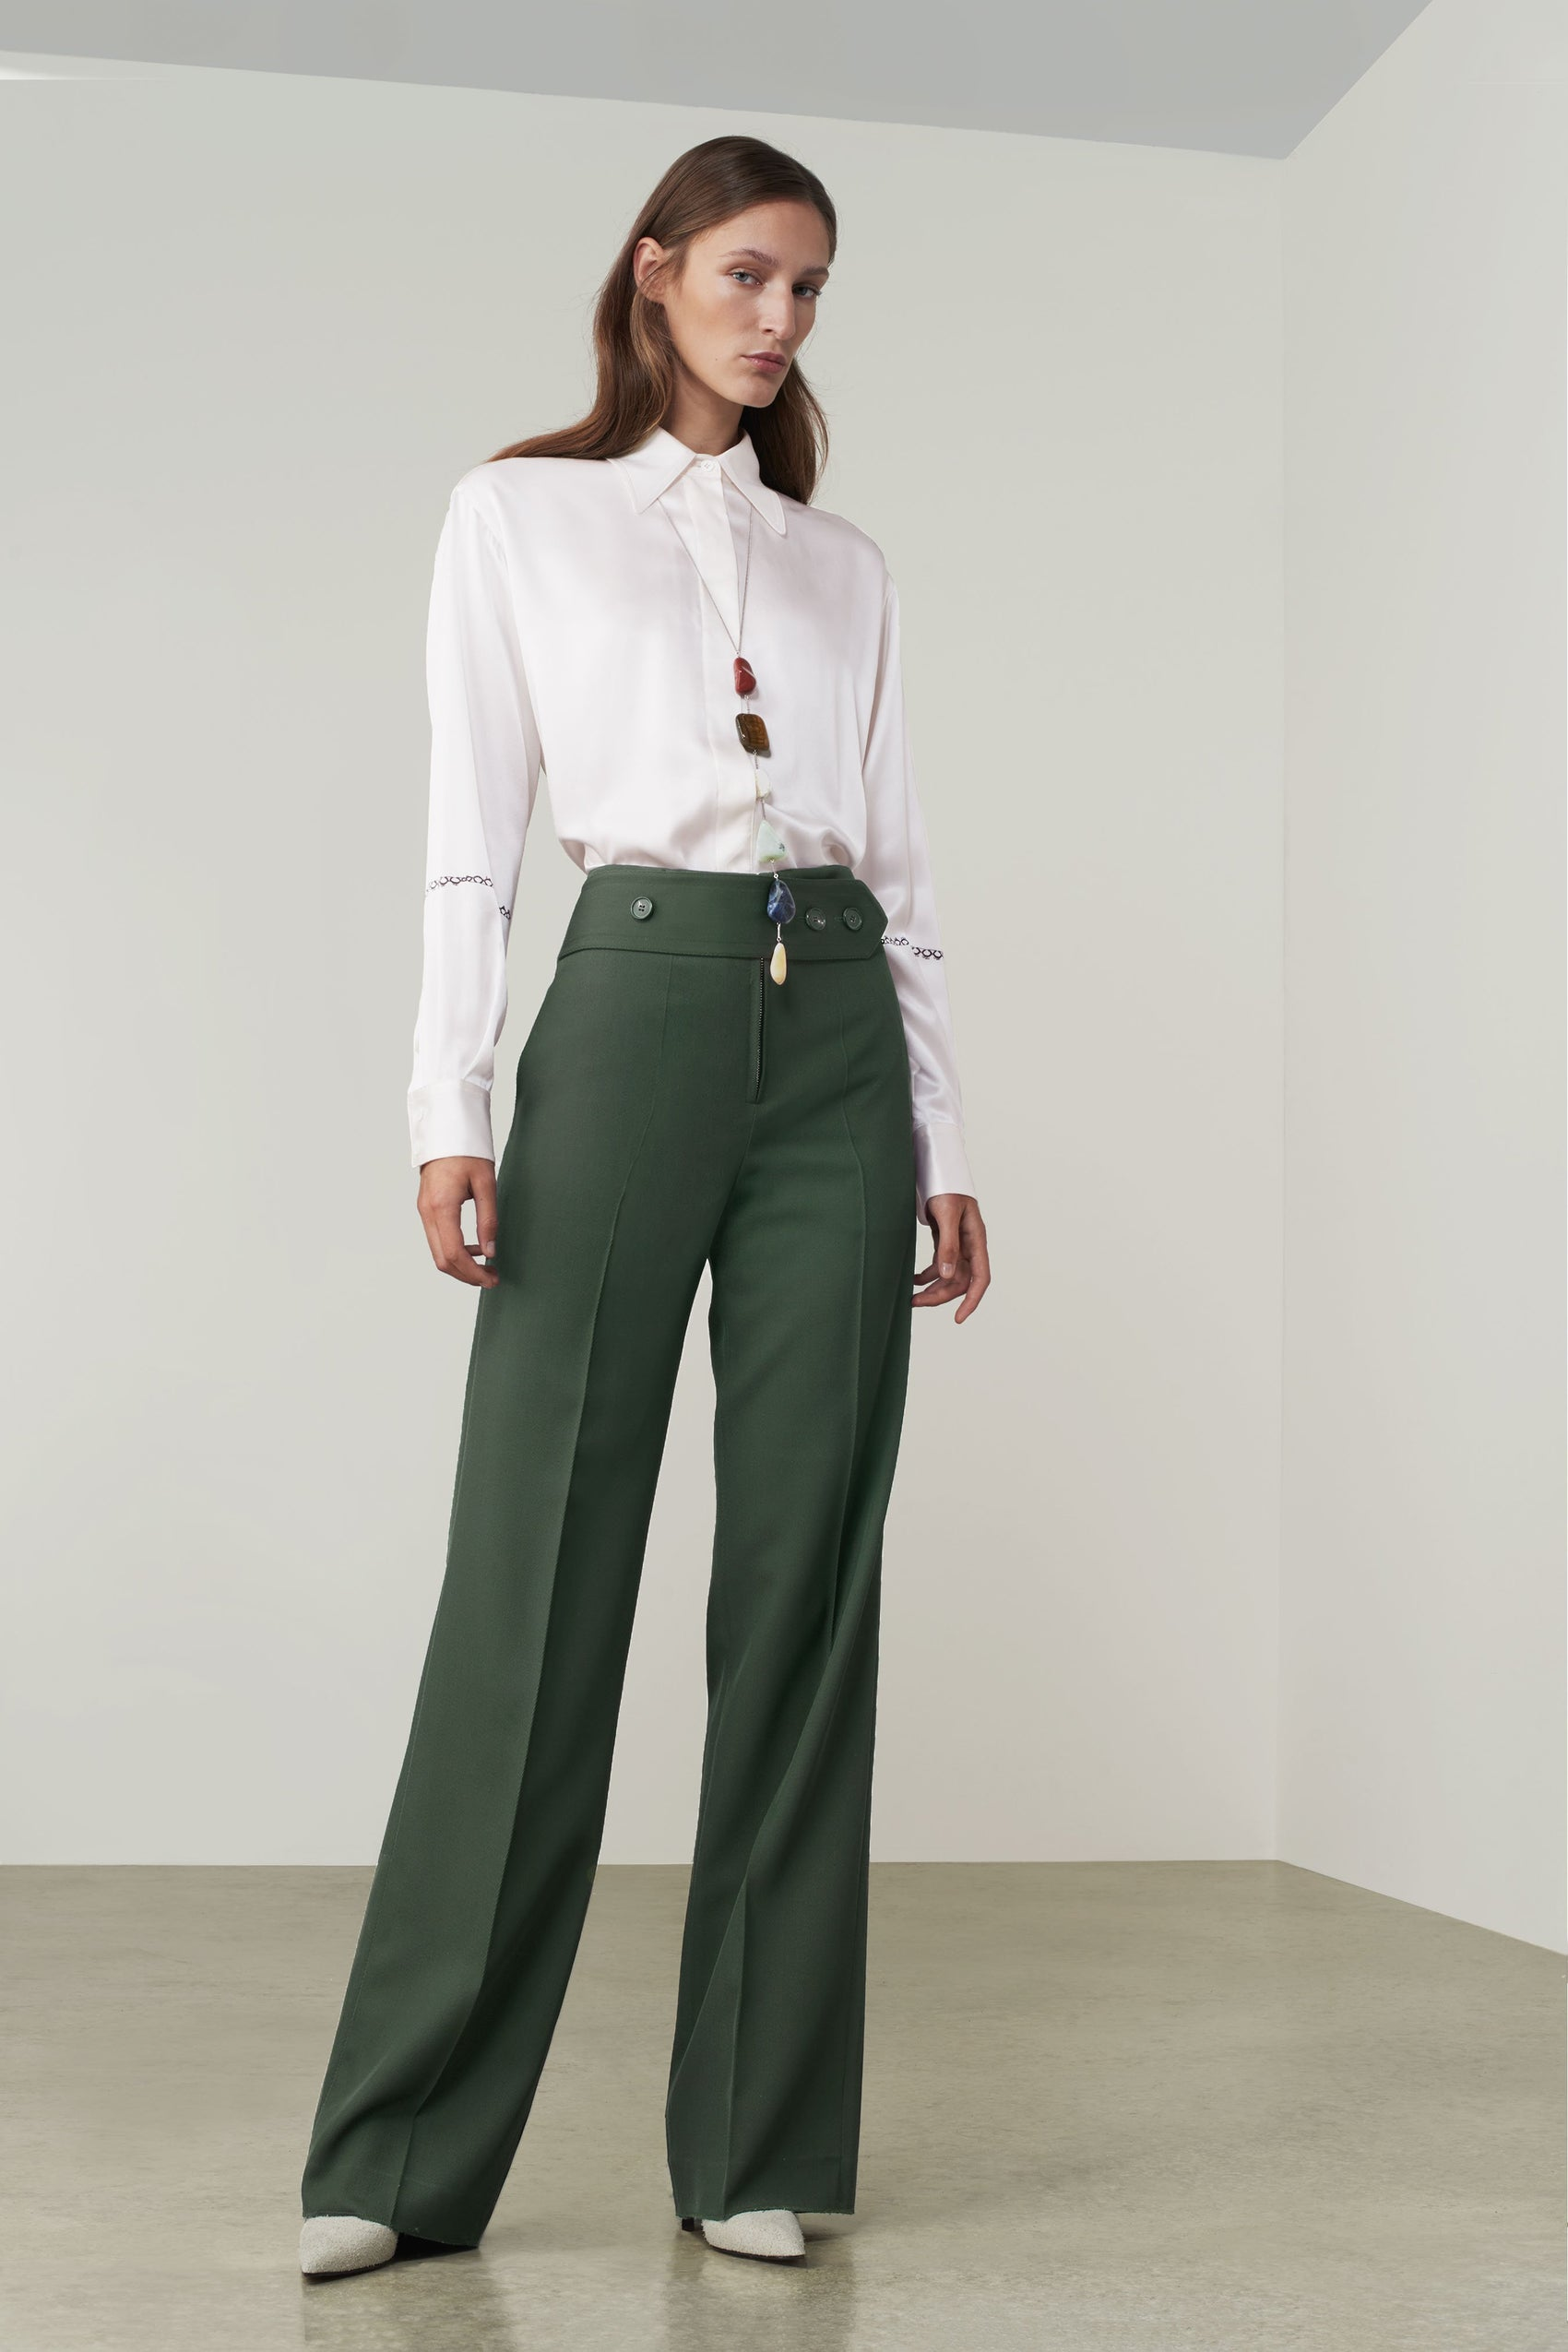 Green wide trousers - Autumn/Winter 2019 must-haves